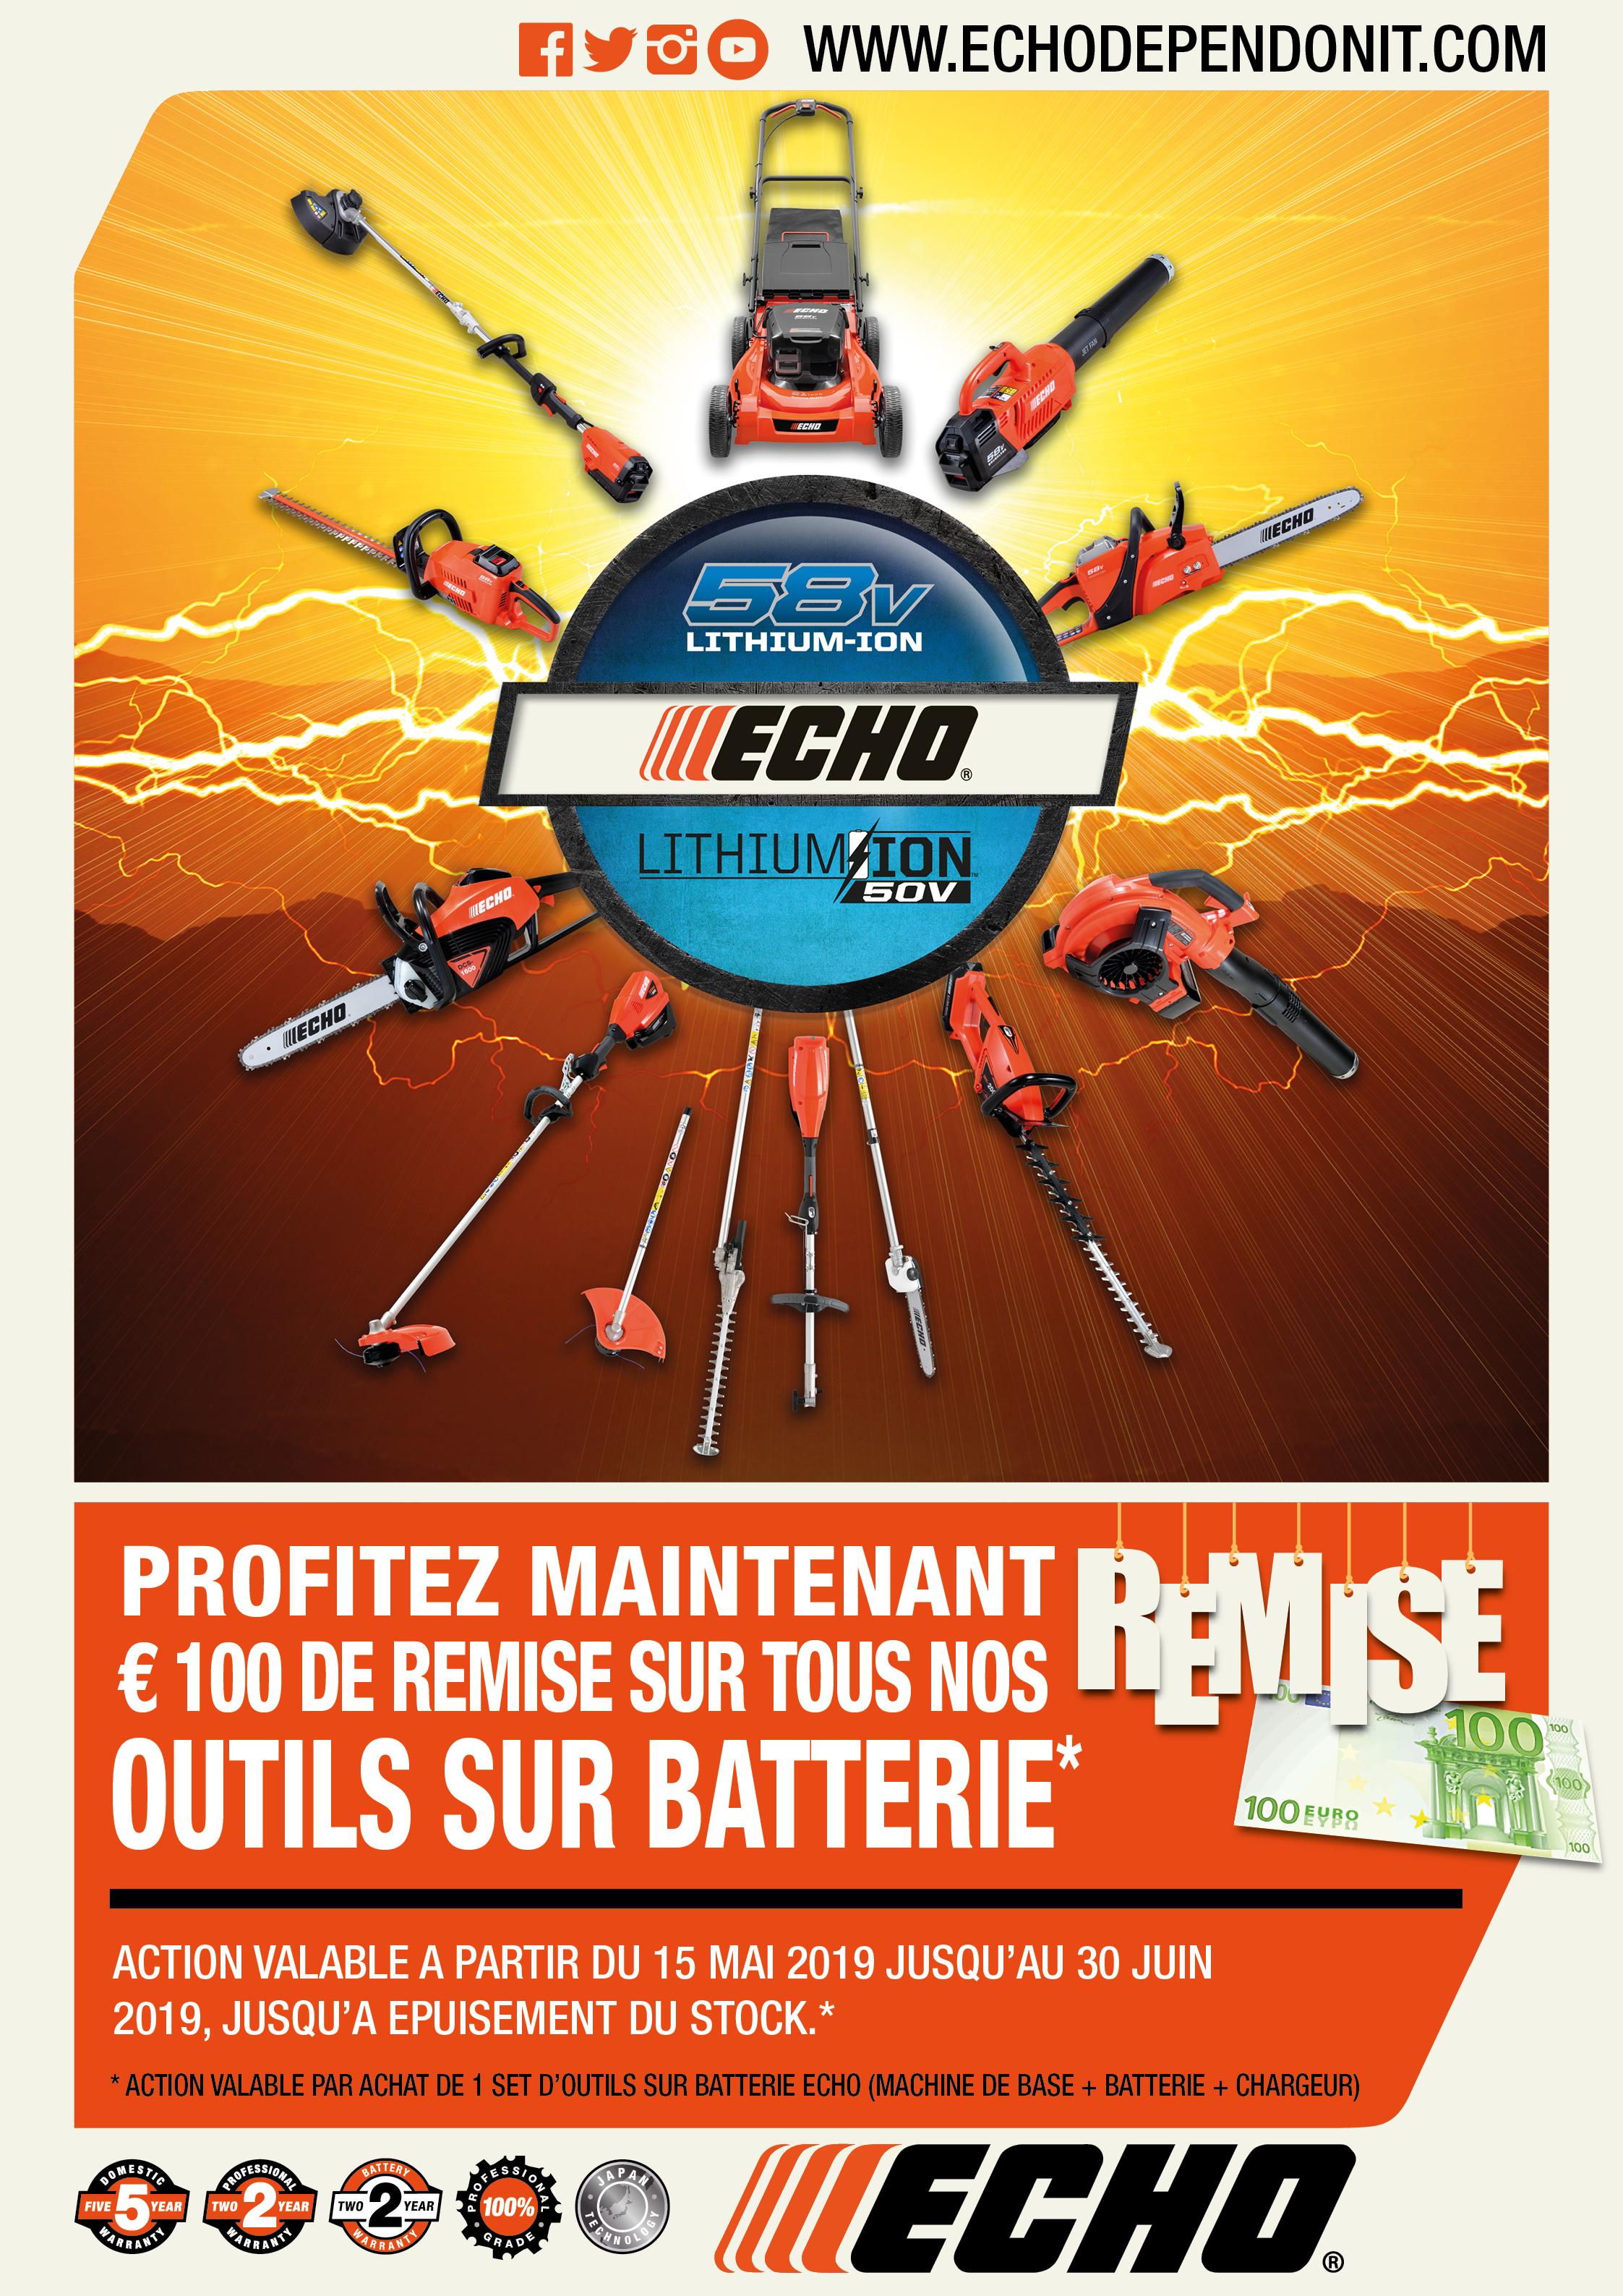 ECHO battery tools promo 50V_58V_19_FR